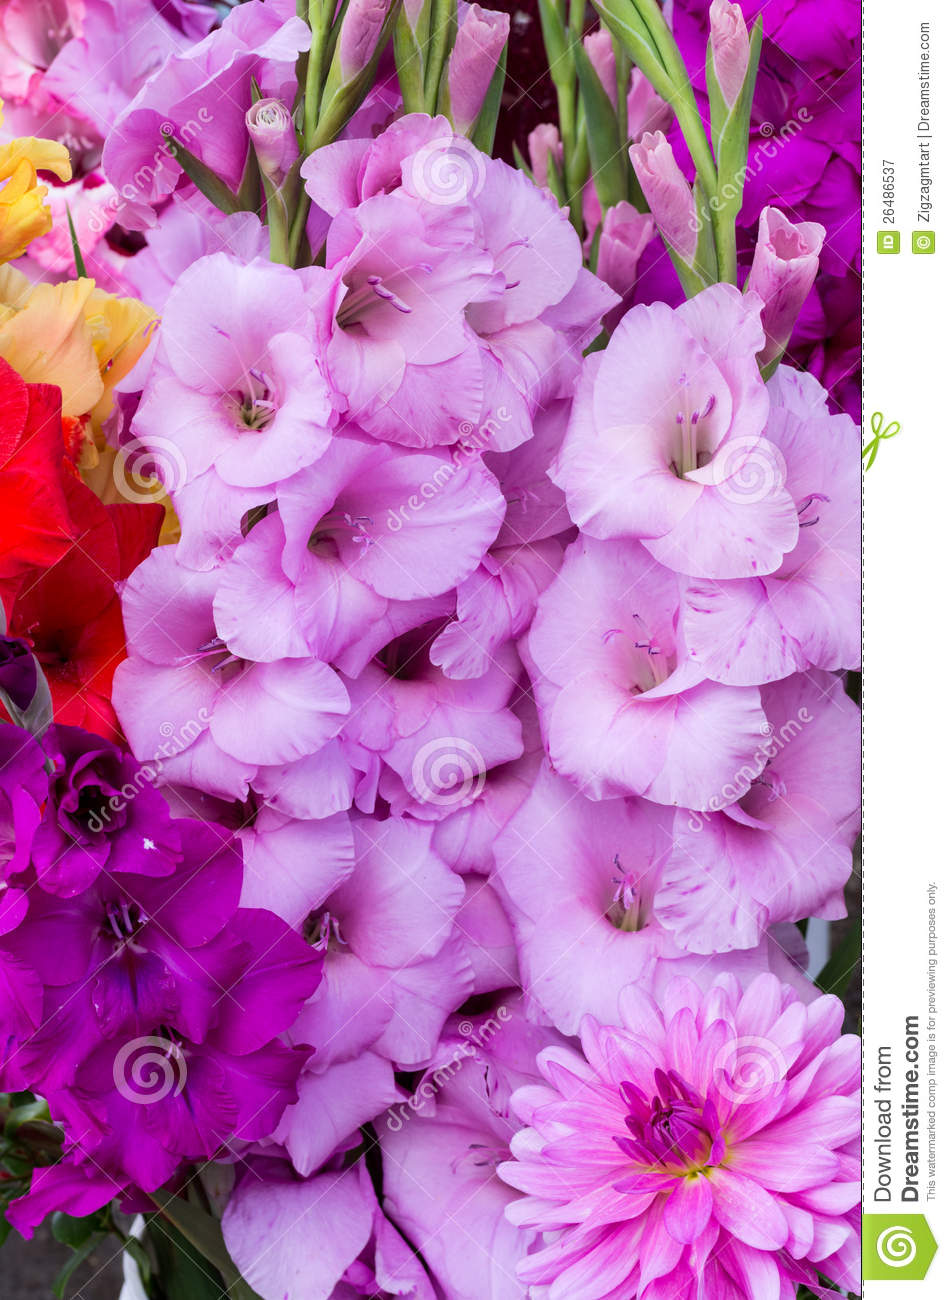 Gladiolus Flowers In Full Bloom Royalty Free Stock